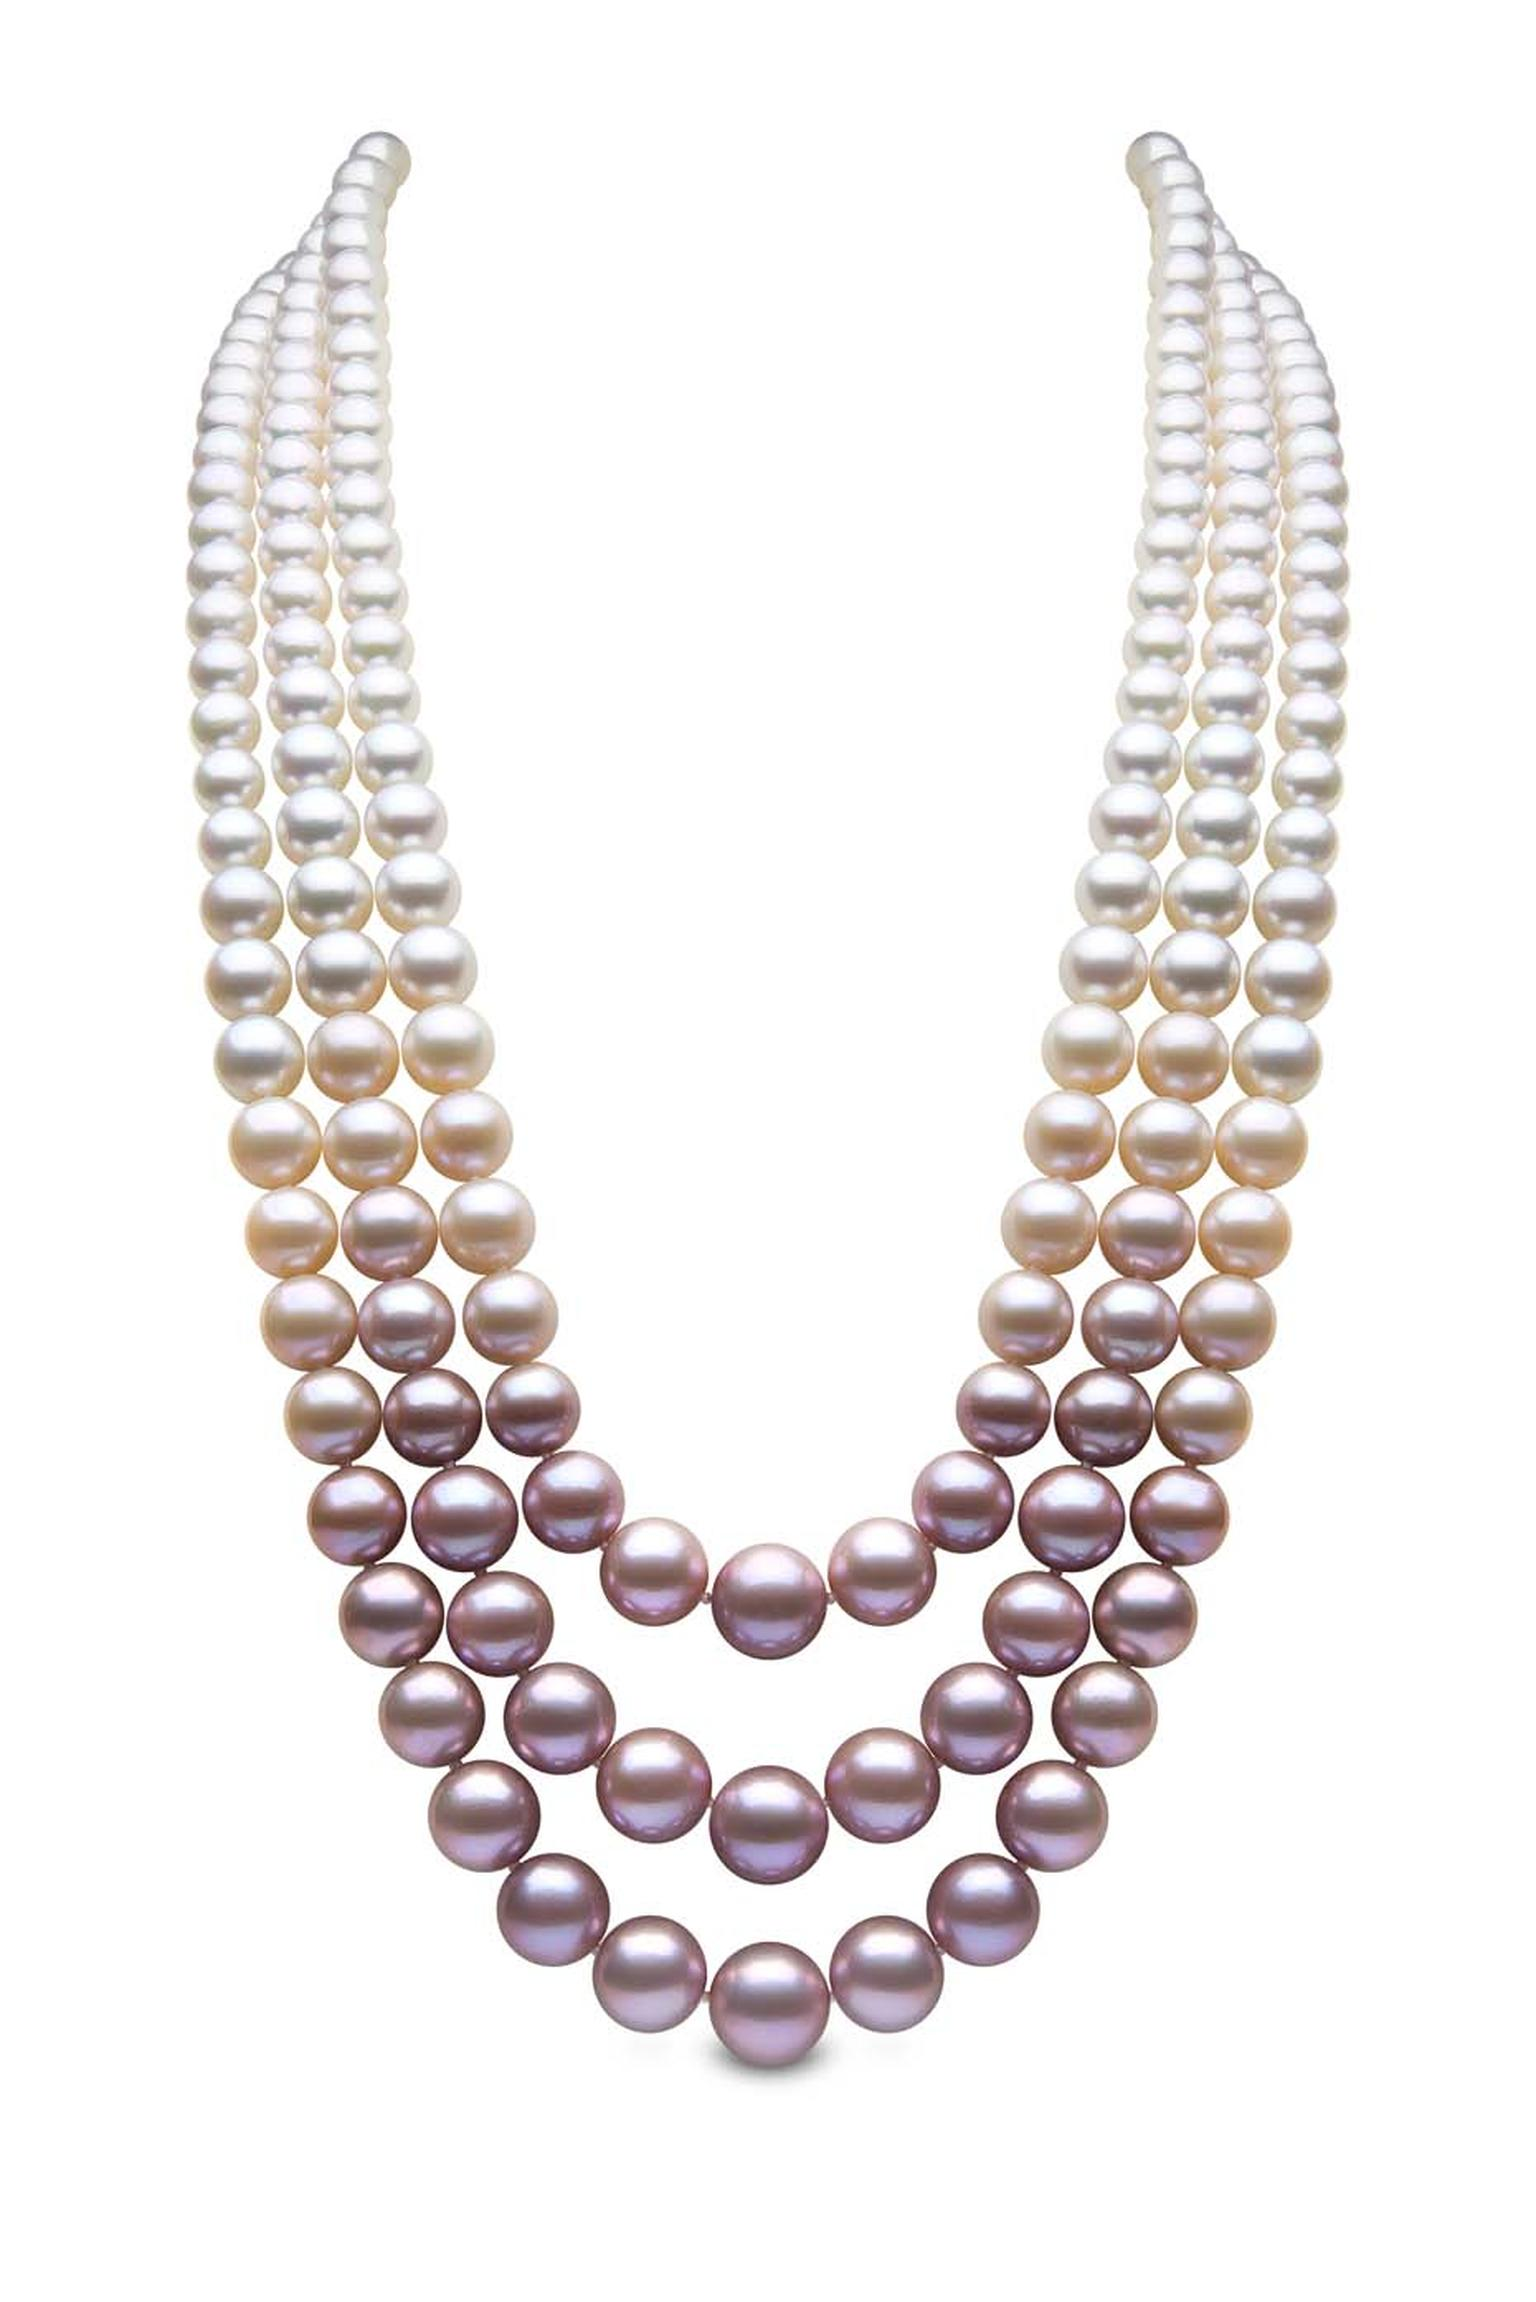 h necklace product certified webstore yellow d gold number cultured freshwater pearl samuel